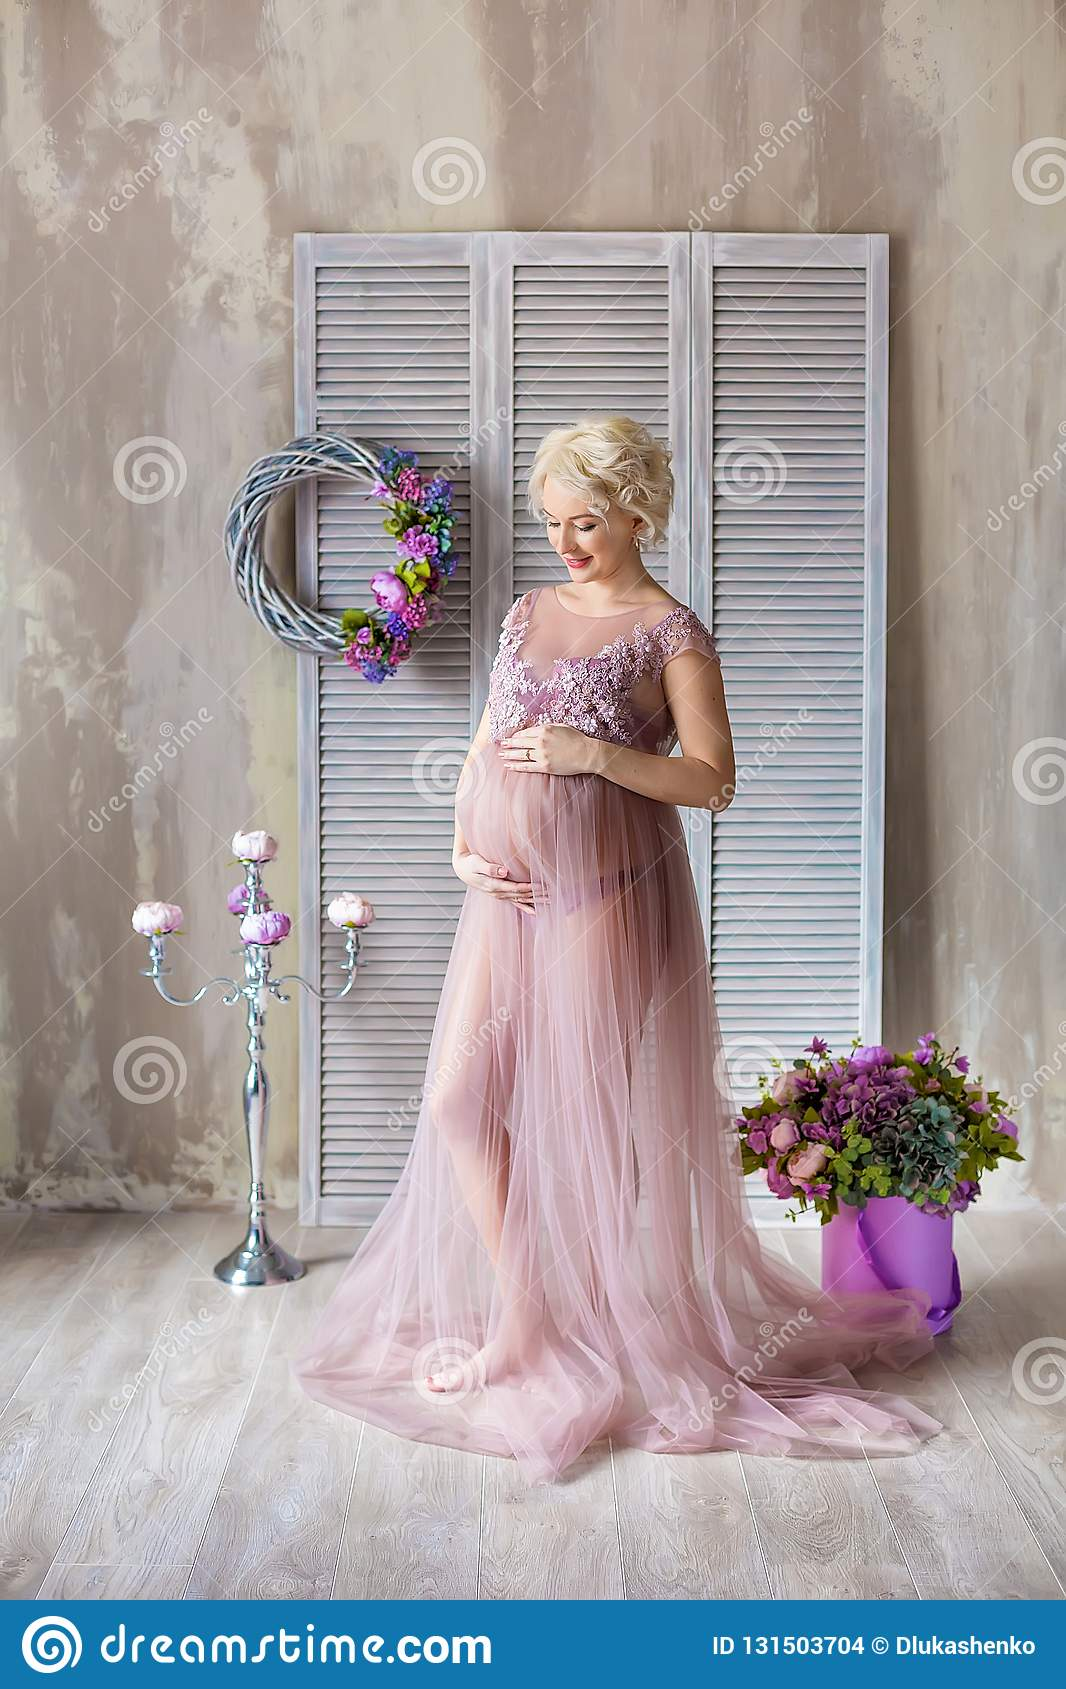 Pregnancy, motherhood and happy future mother concept - pregnant woman in airy violet dress with bouquet flowers against colorful